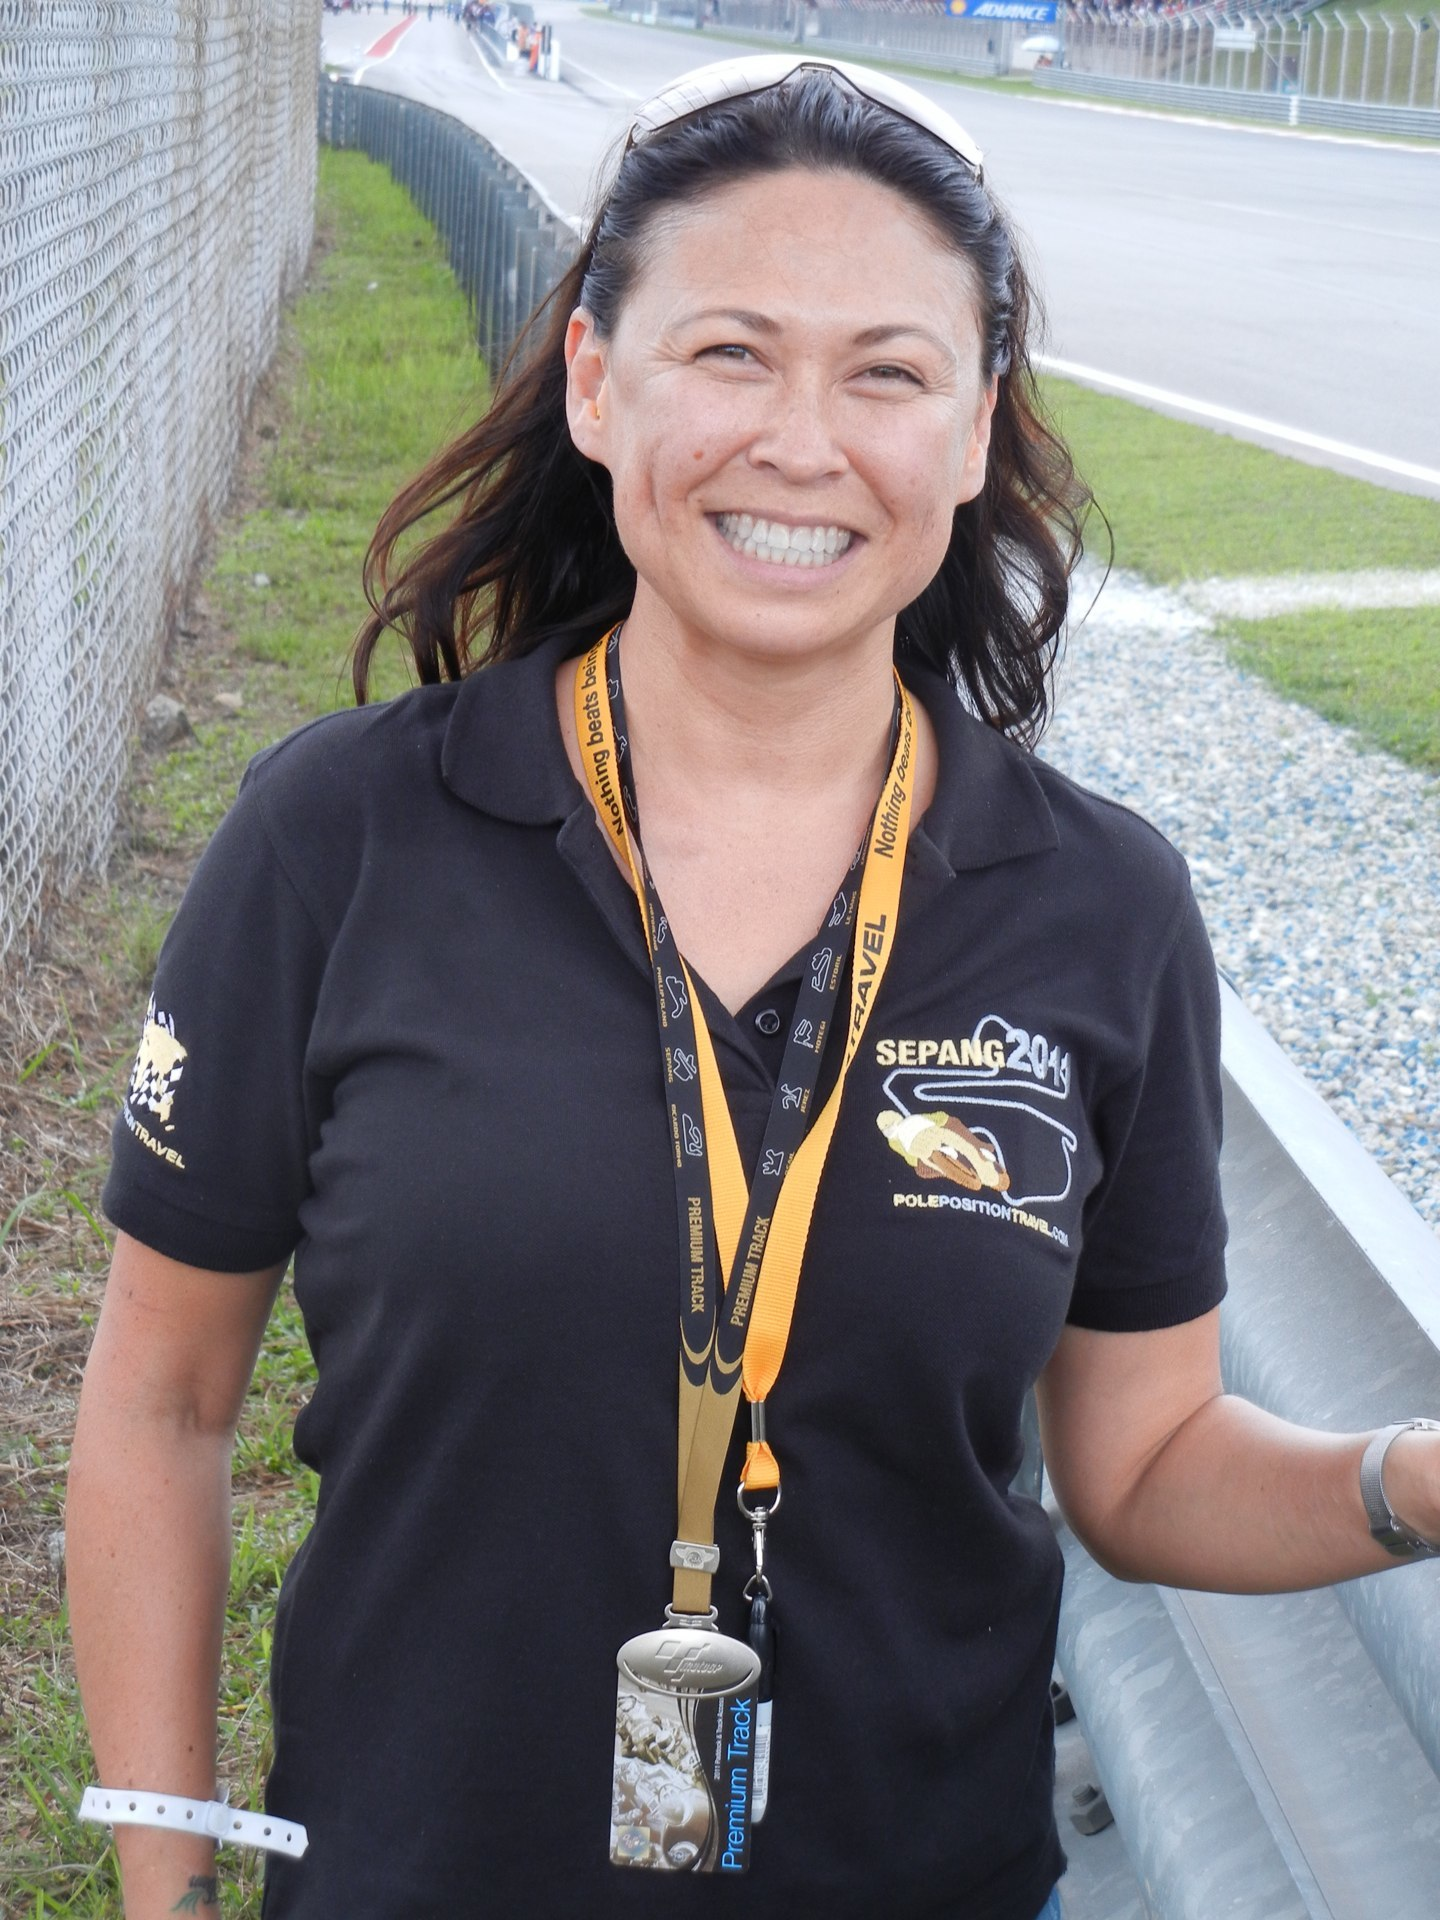 Susie in Sepang